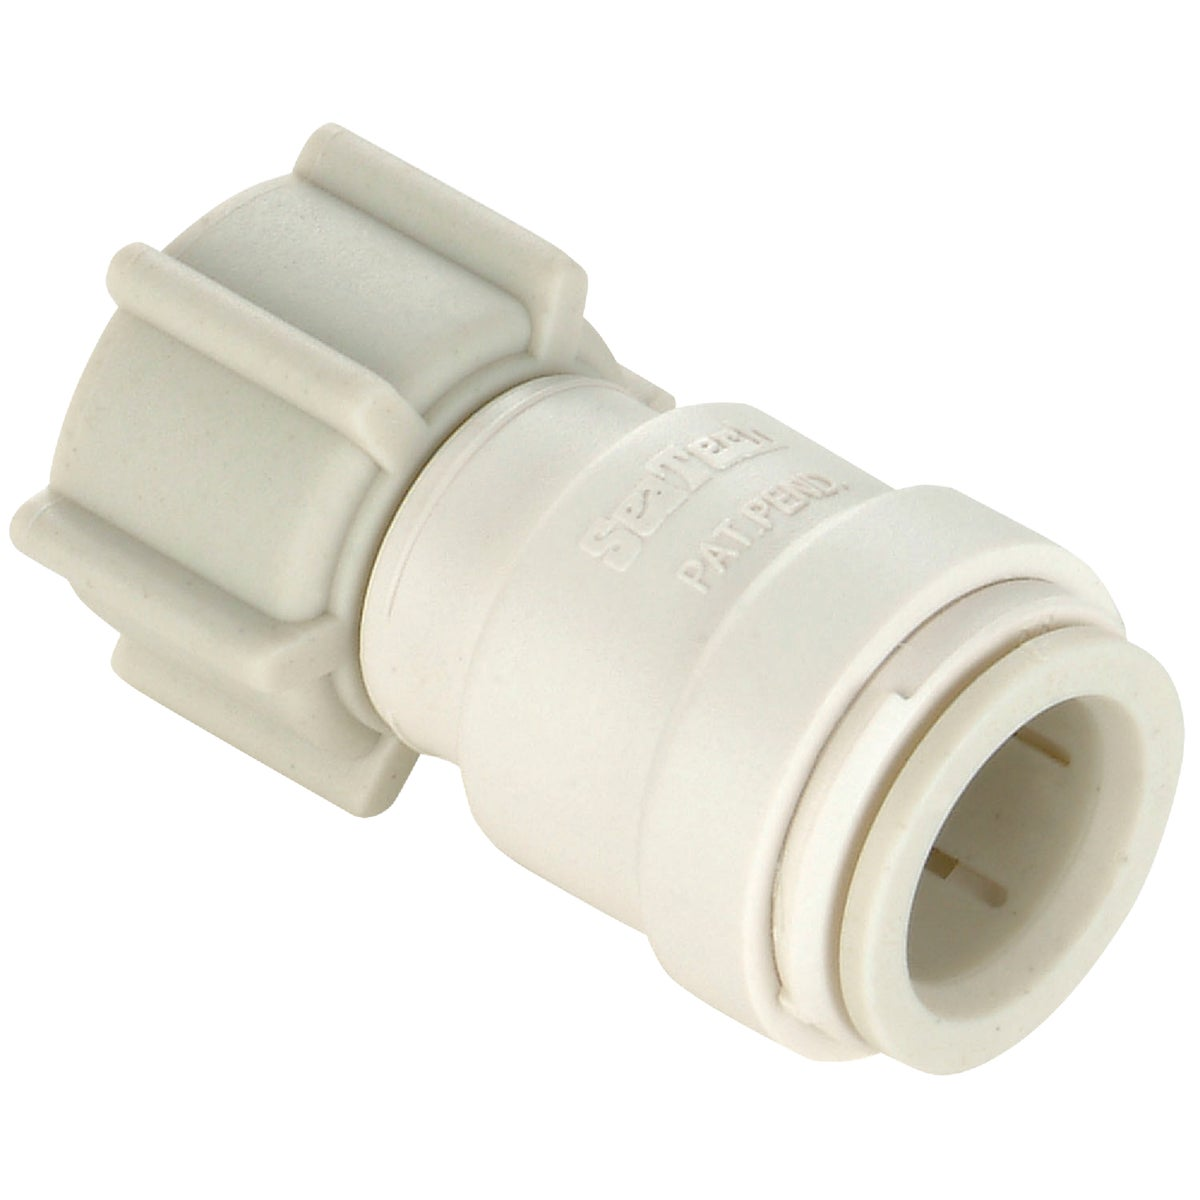 3/4CTSX3/4FPT ADAPTER - P-815 by Watts Pex